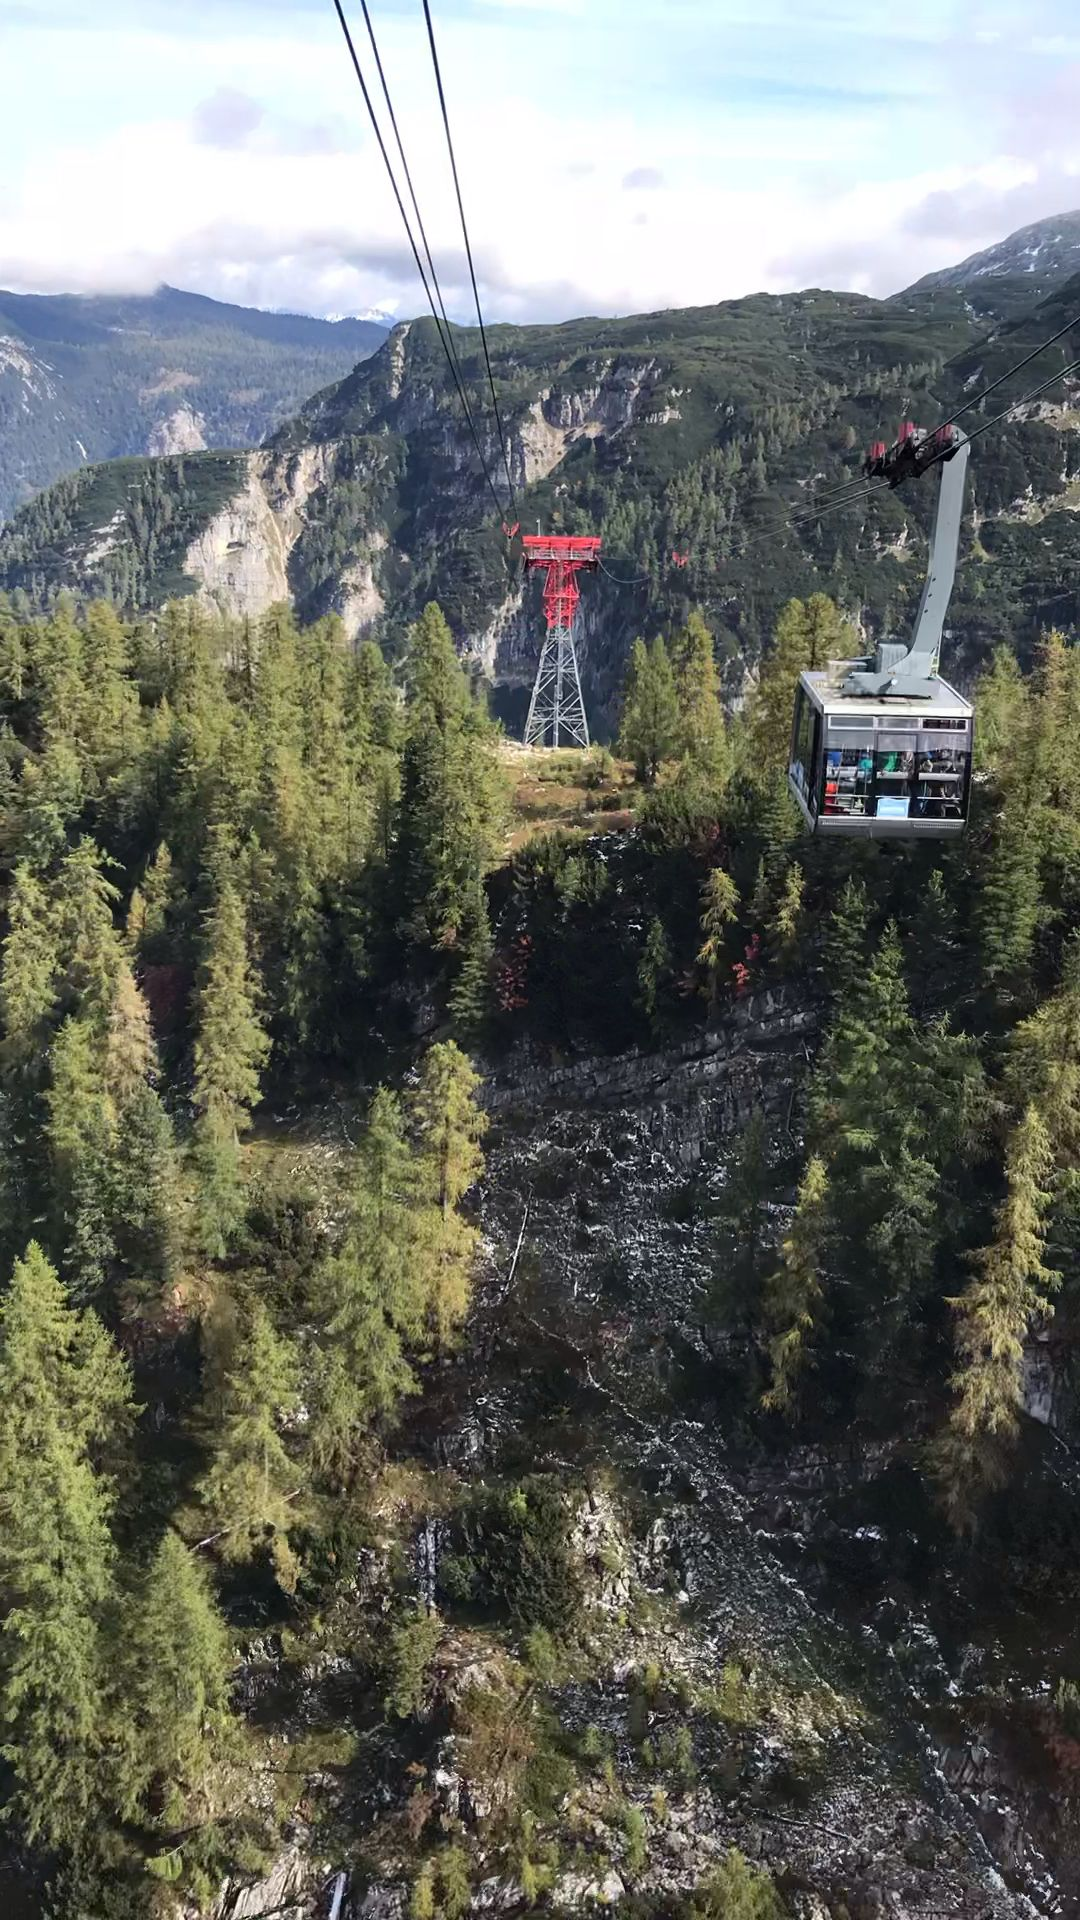 Cable car ride up the Dachstein Austrian Alps to the Five Fingers Outlook above Hallstatt Austria #Dachstein #AustrianAlps #FiveFingers #HallstattAustria